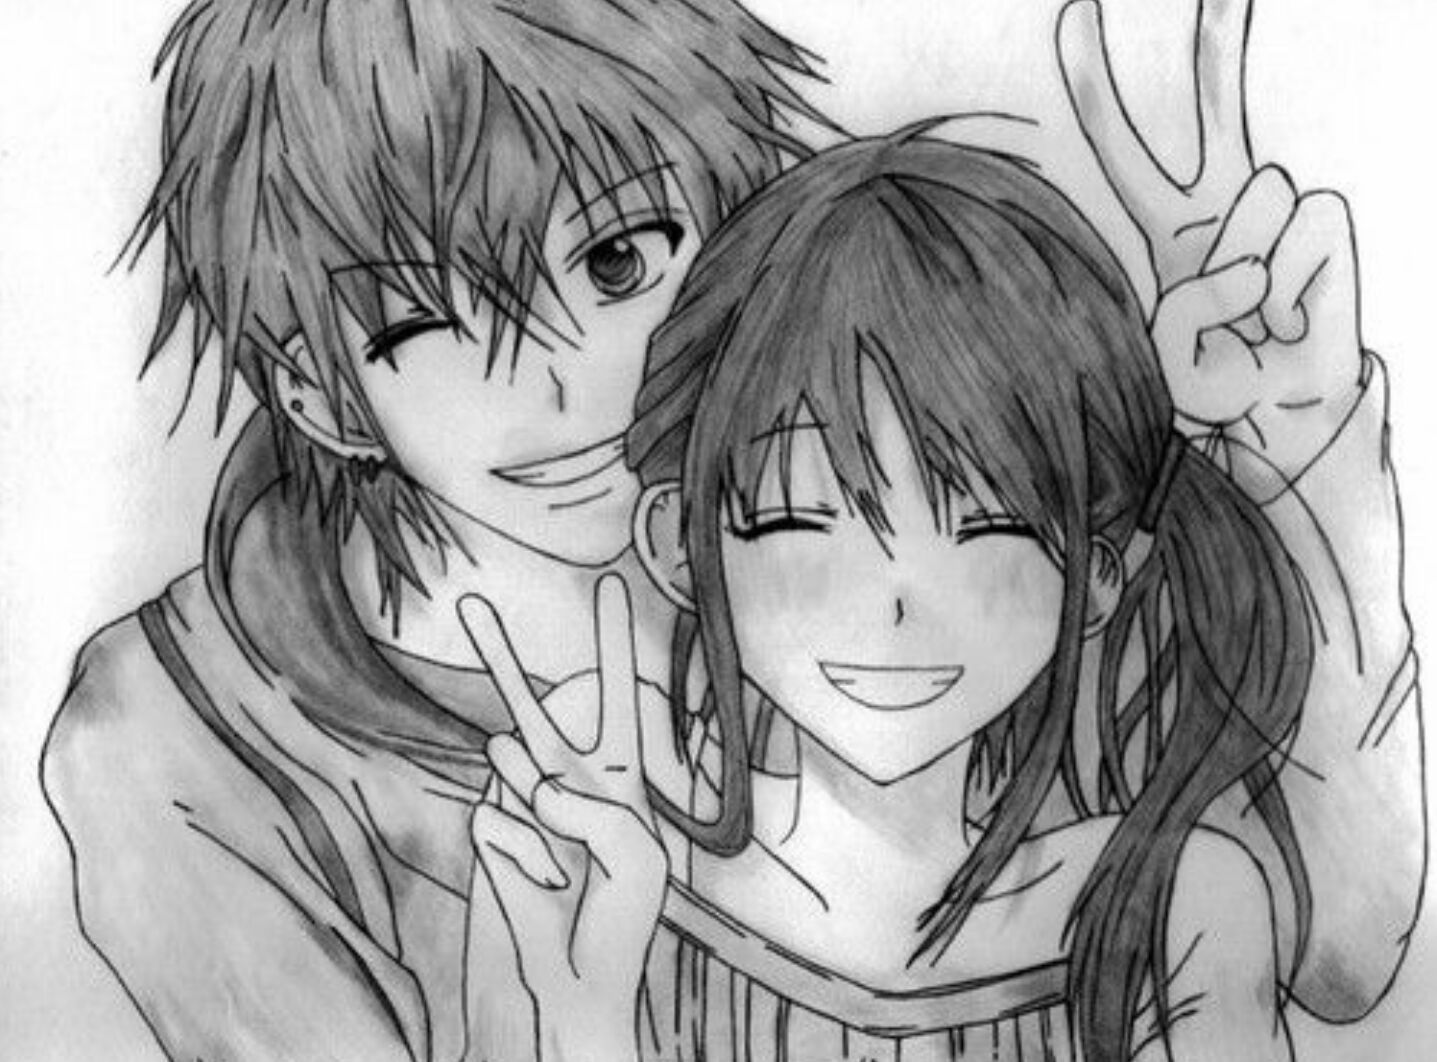 Afbeeldingsresultaat voor anime couple black and white